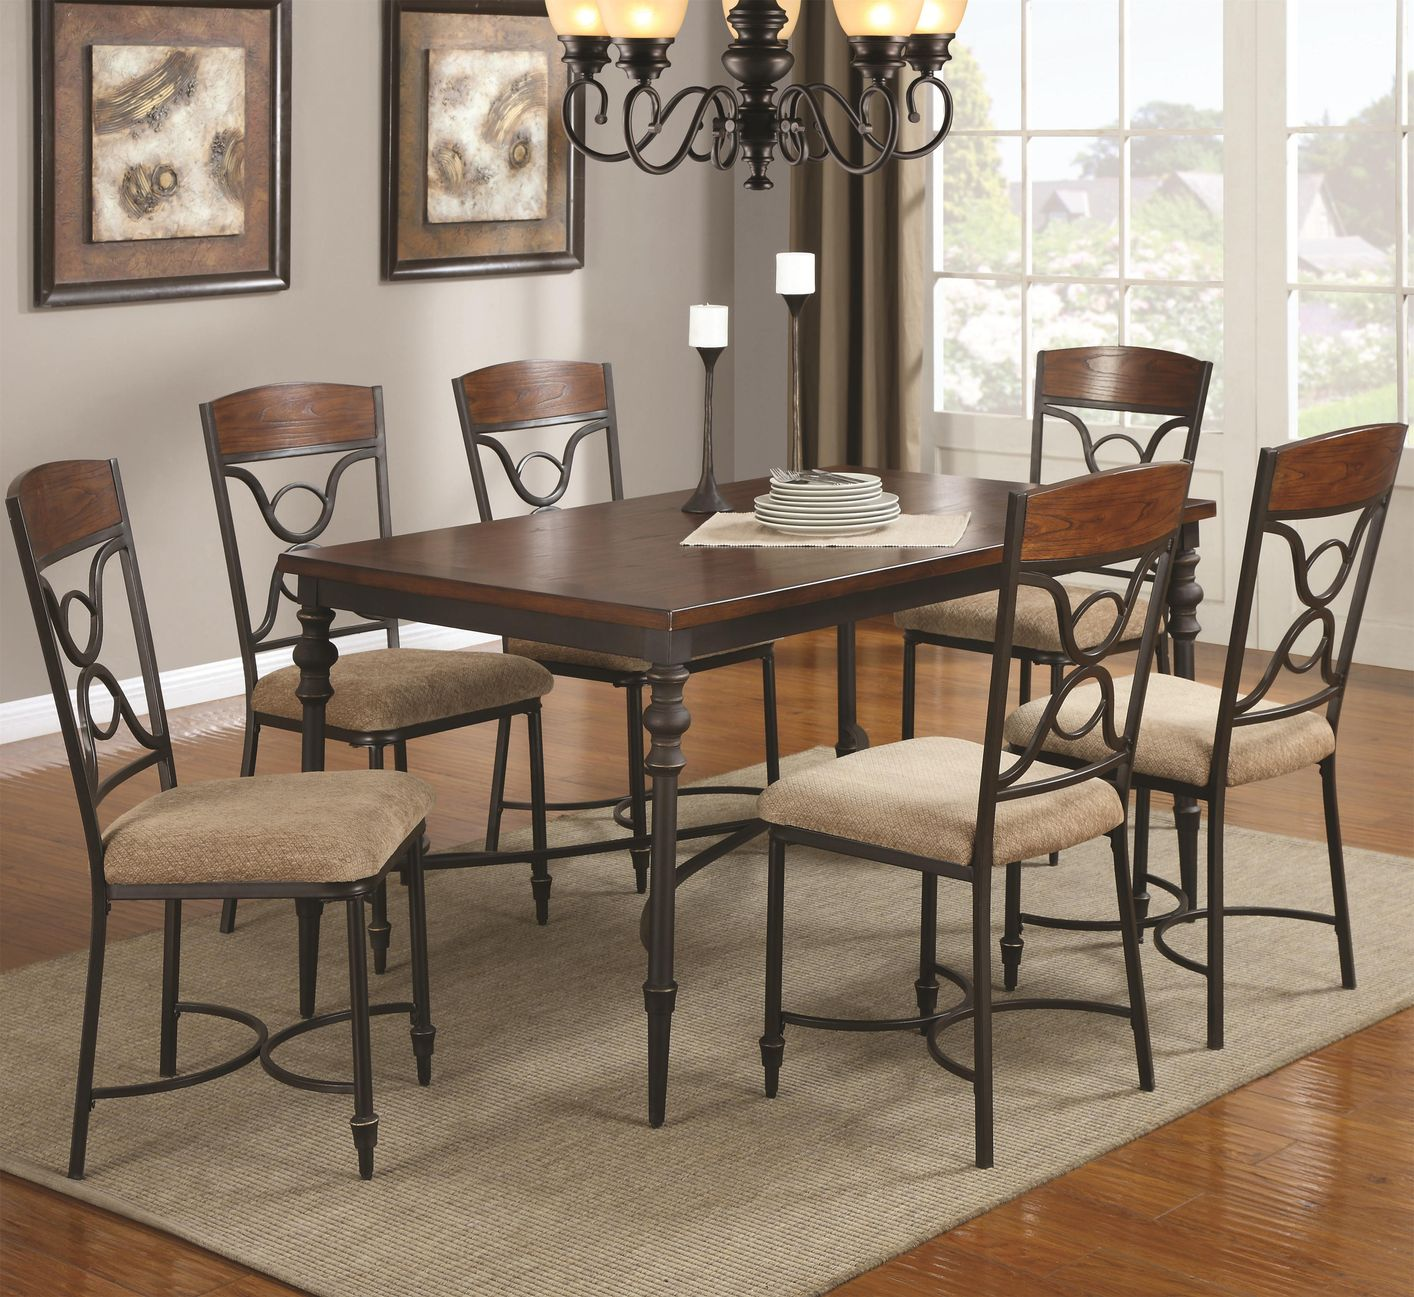 Elegant Klaus Cherry Metal And Wood Dining Table Set